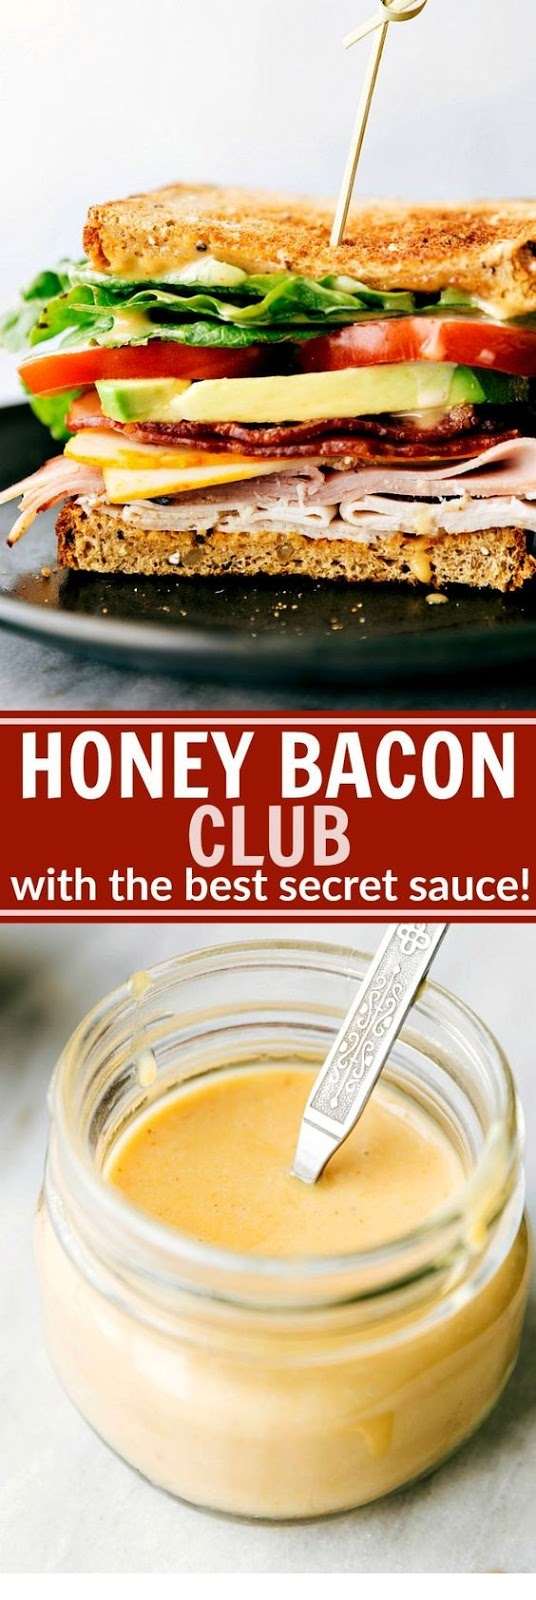 Honey Bacon Club